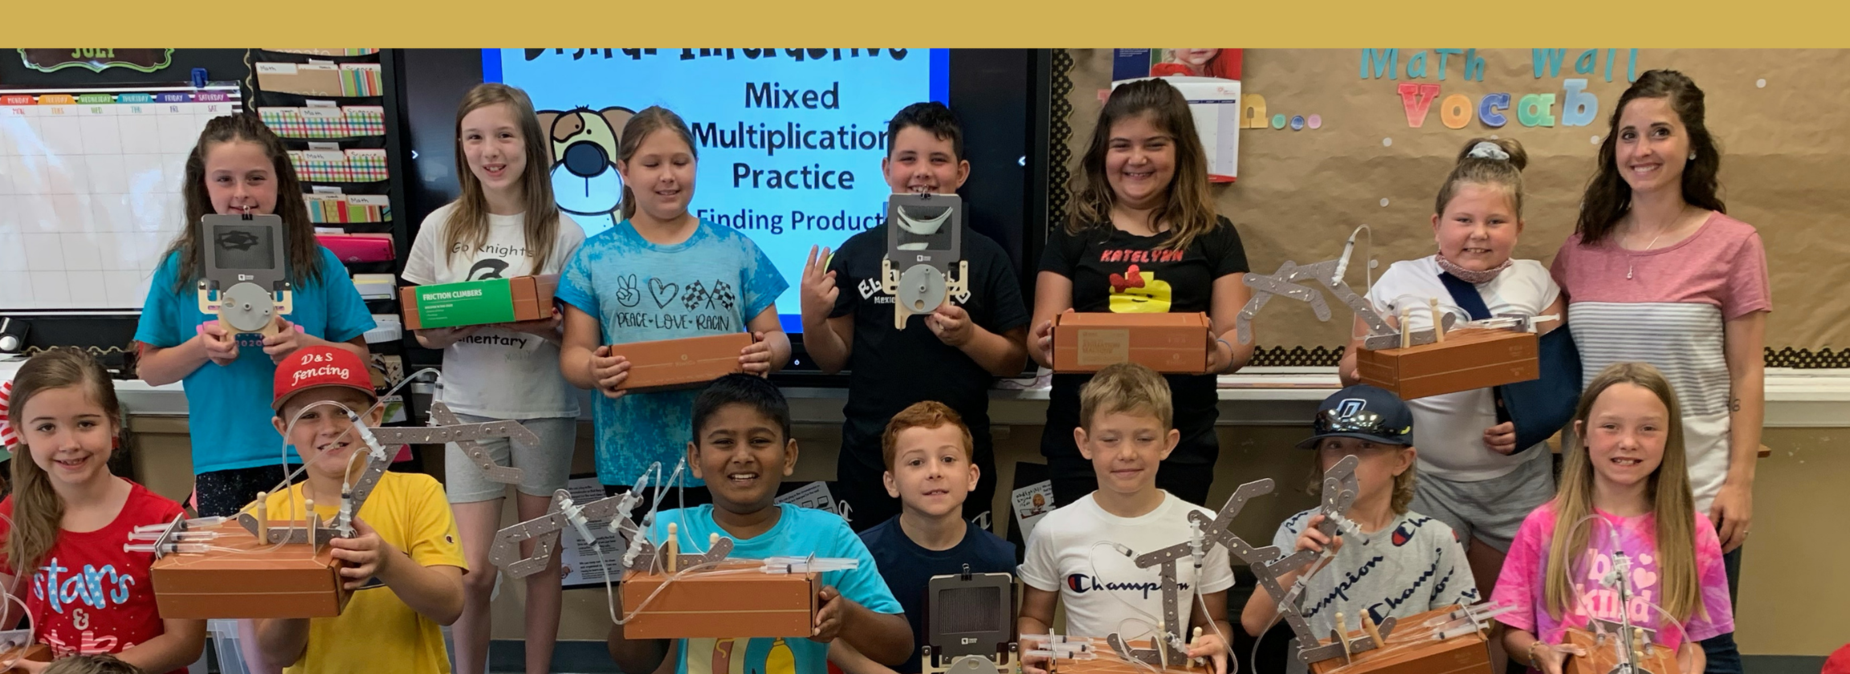 Students showing their finished STEM projects from the Summer Learning Academy.